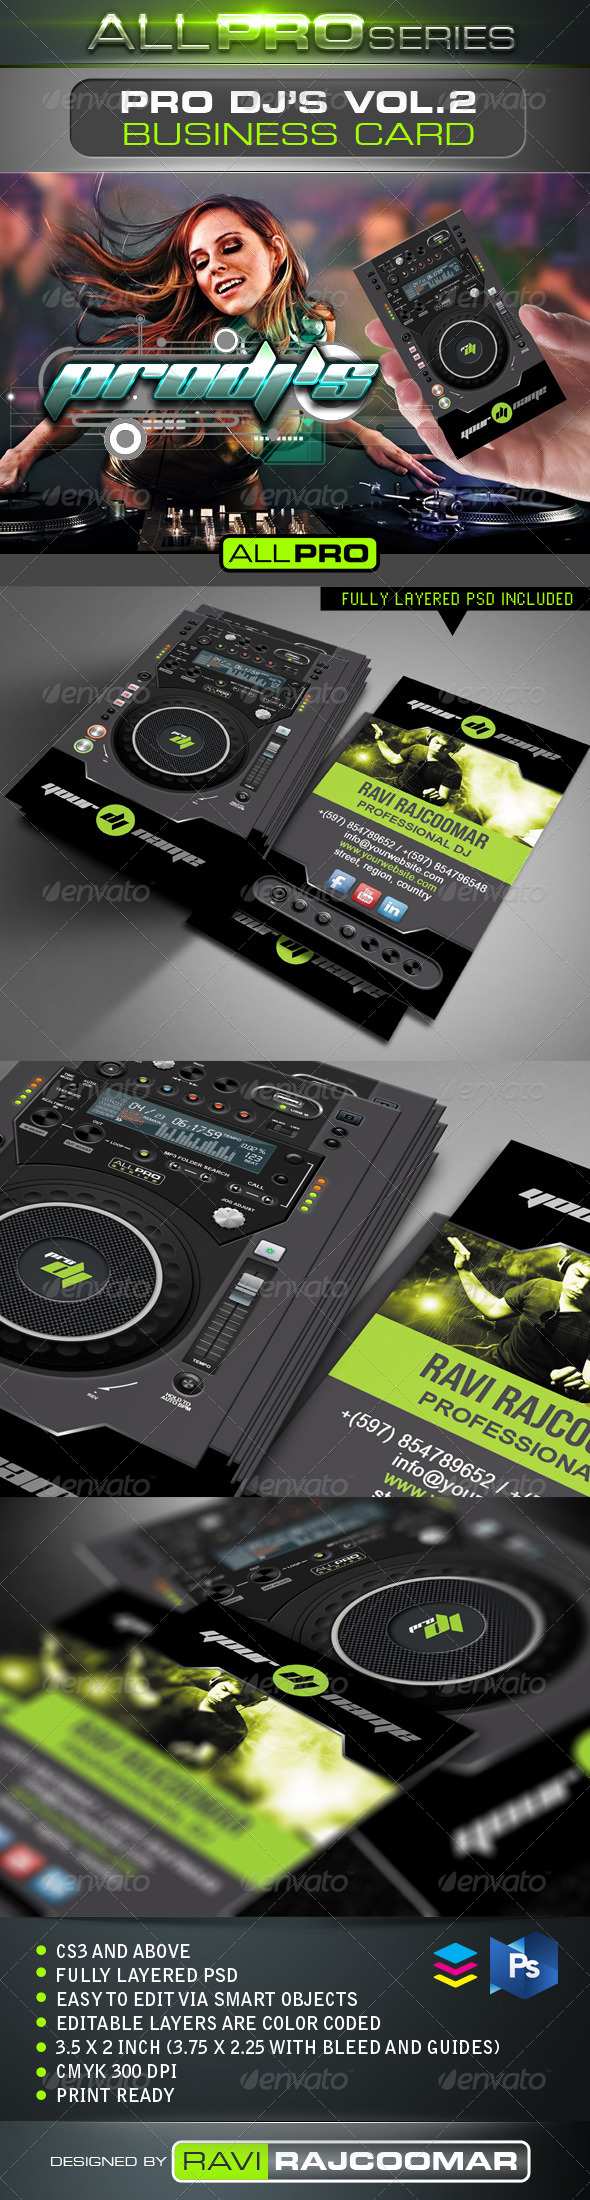 Pro DJ's Business Card Vol.2 - Industry Specific Business Cards